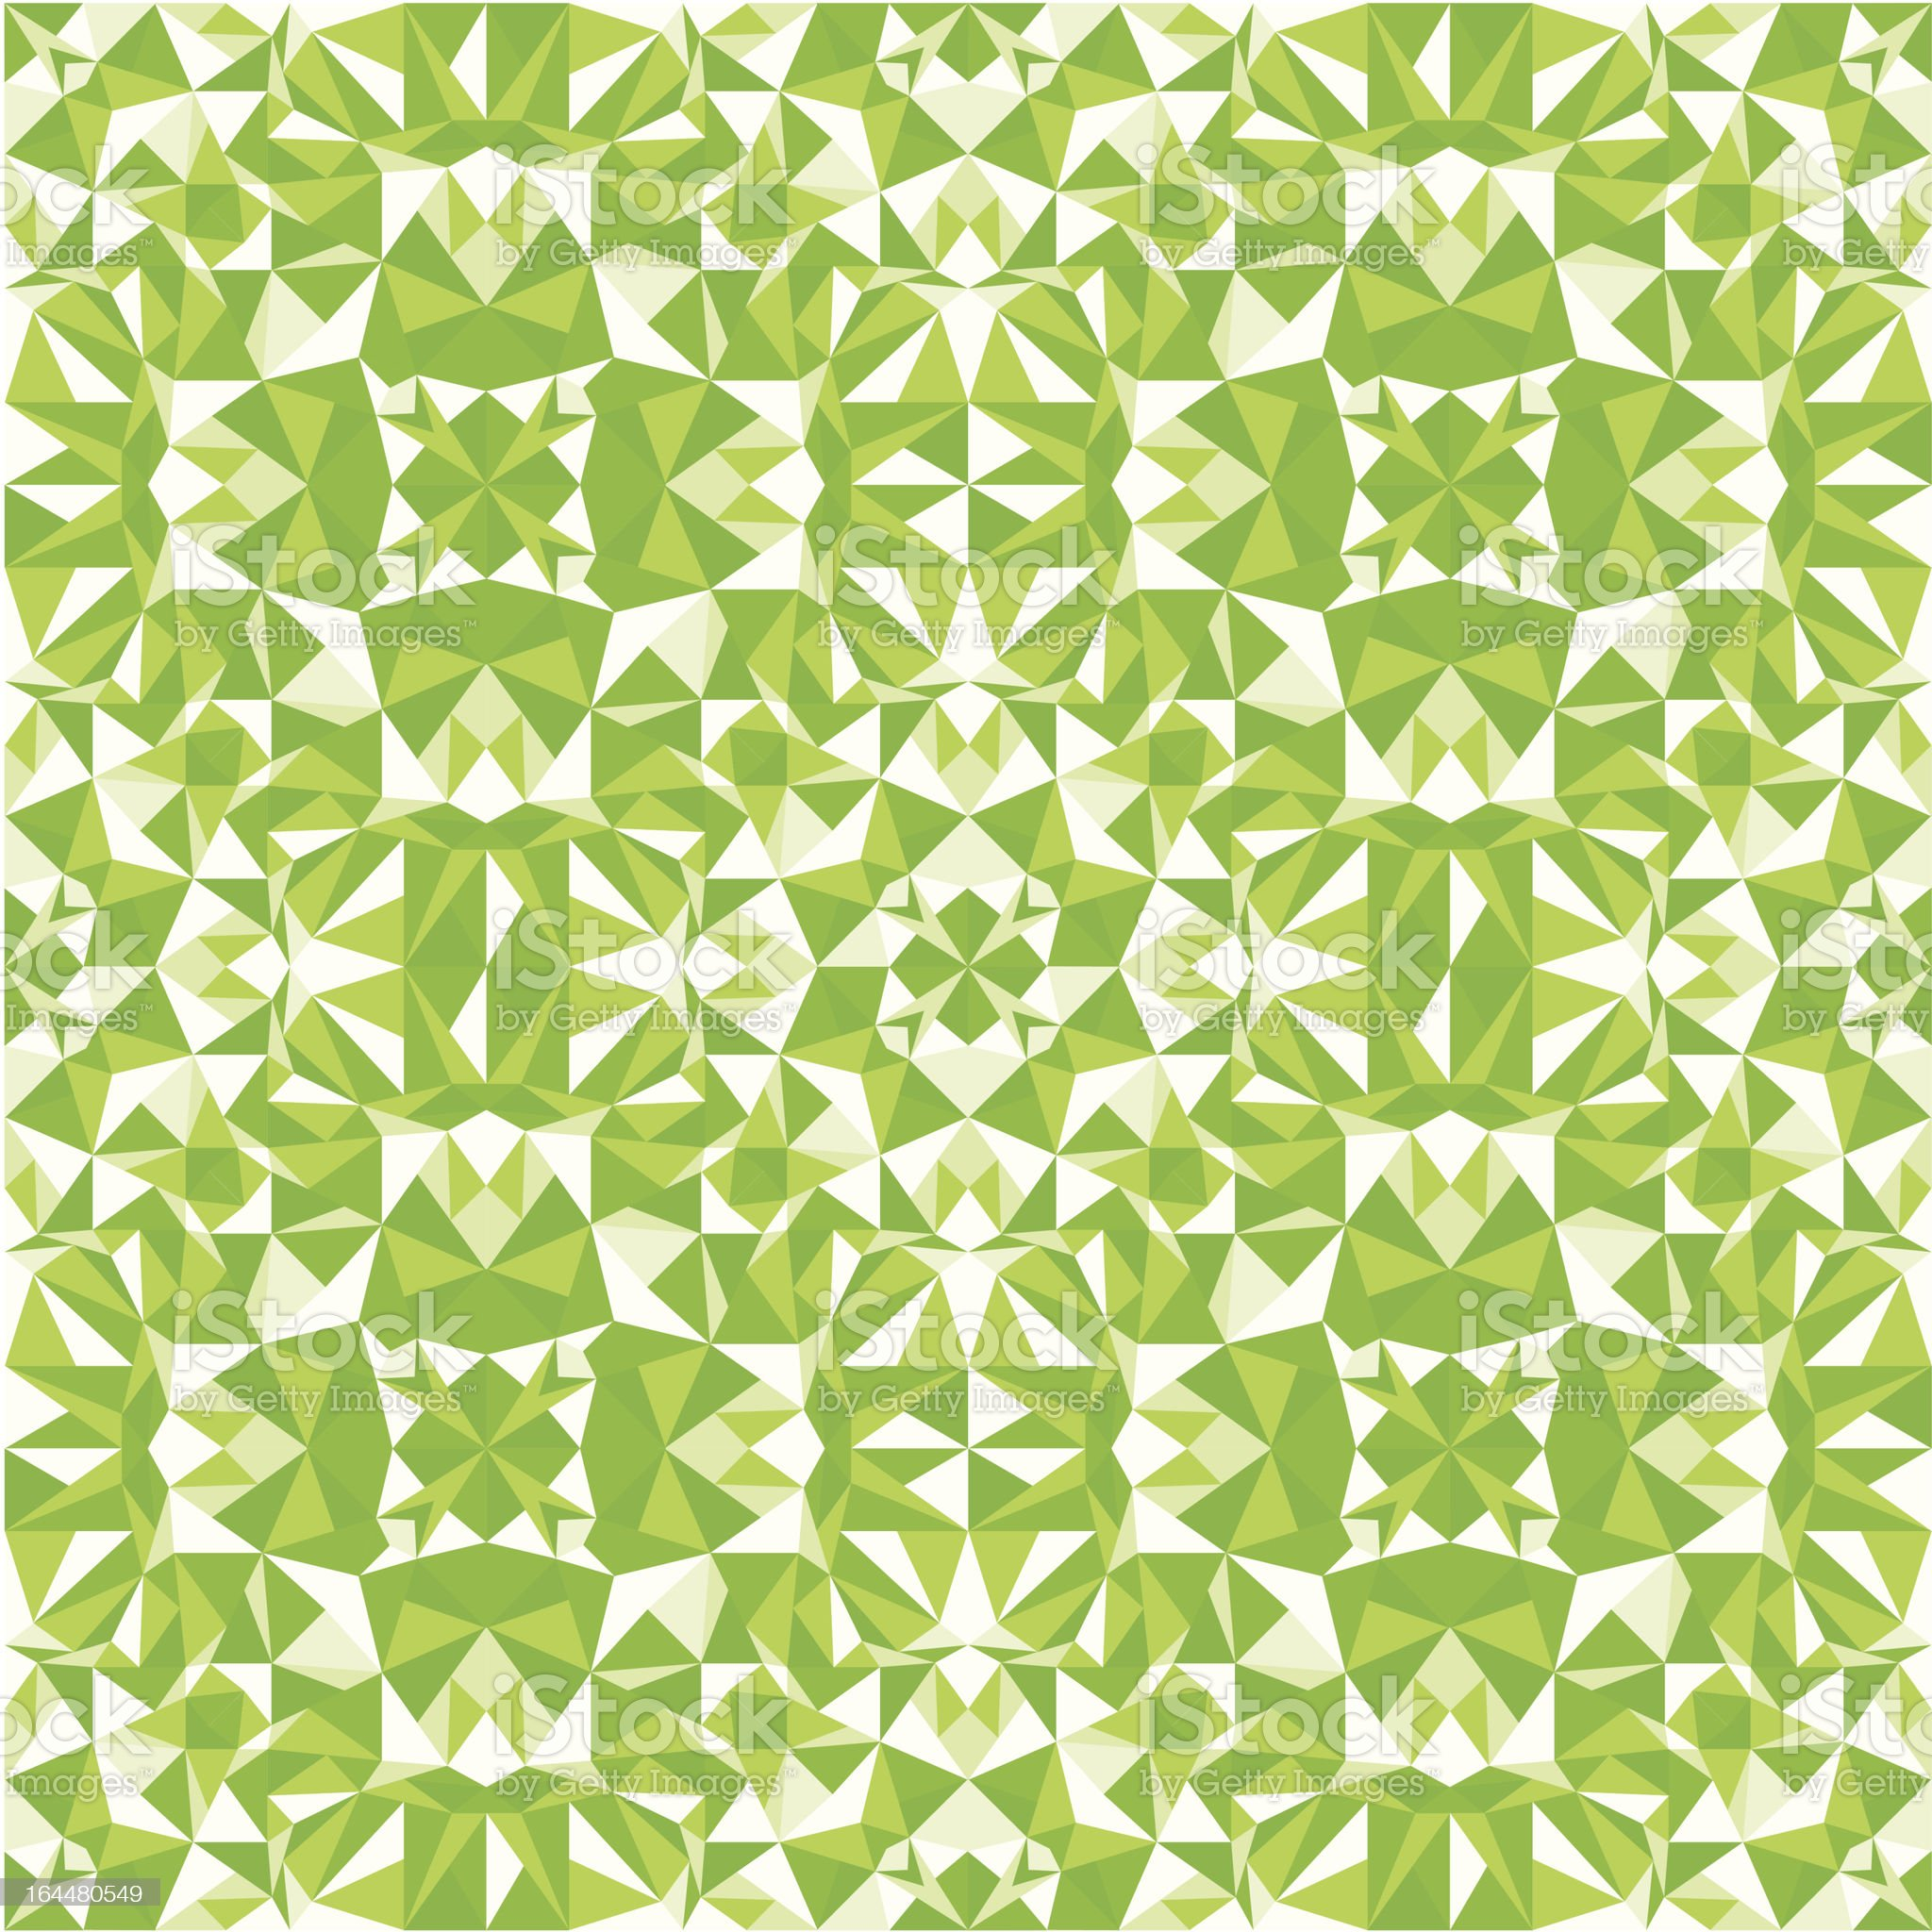 Green triangle texture seamless pattern background royalty-free stock vector art